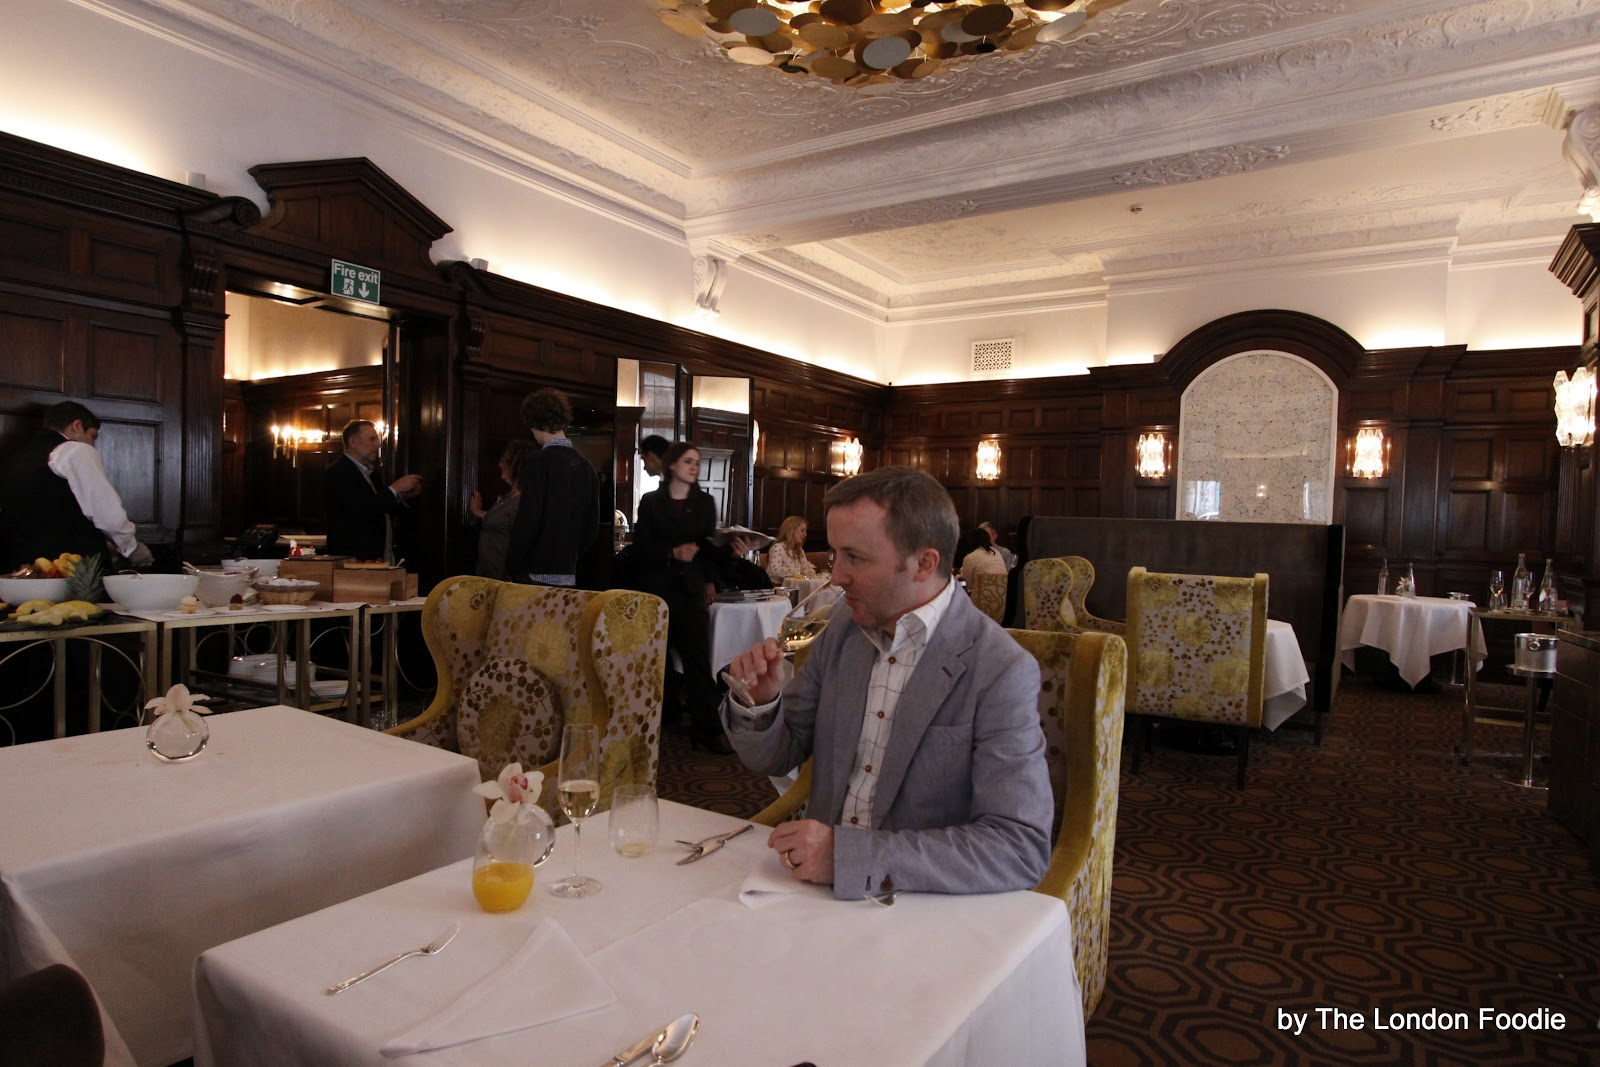 the london foodie h l ne darroze 39 s saturday brunch at the connaught. Black Bedroom Furniture Sets. Home Design Ideas